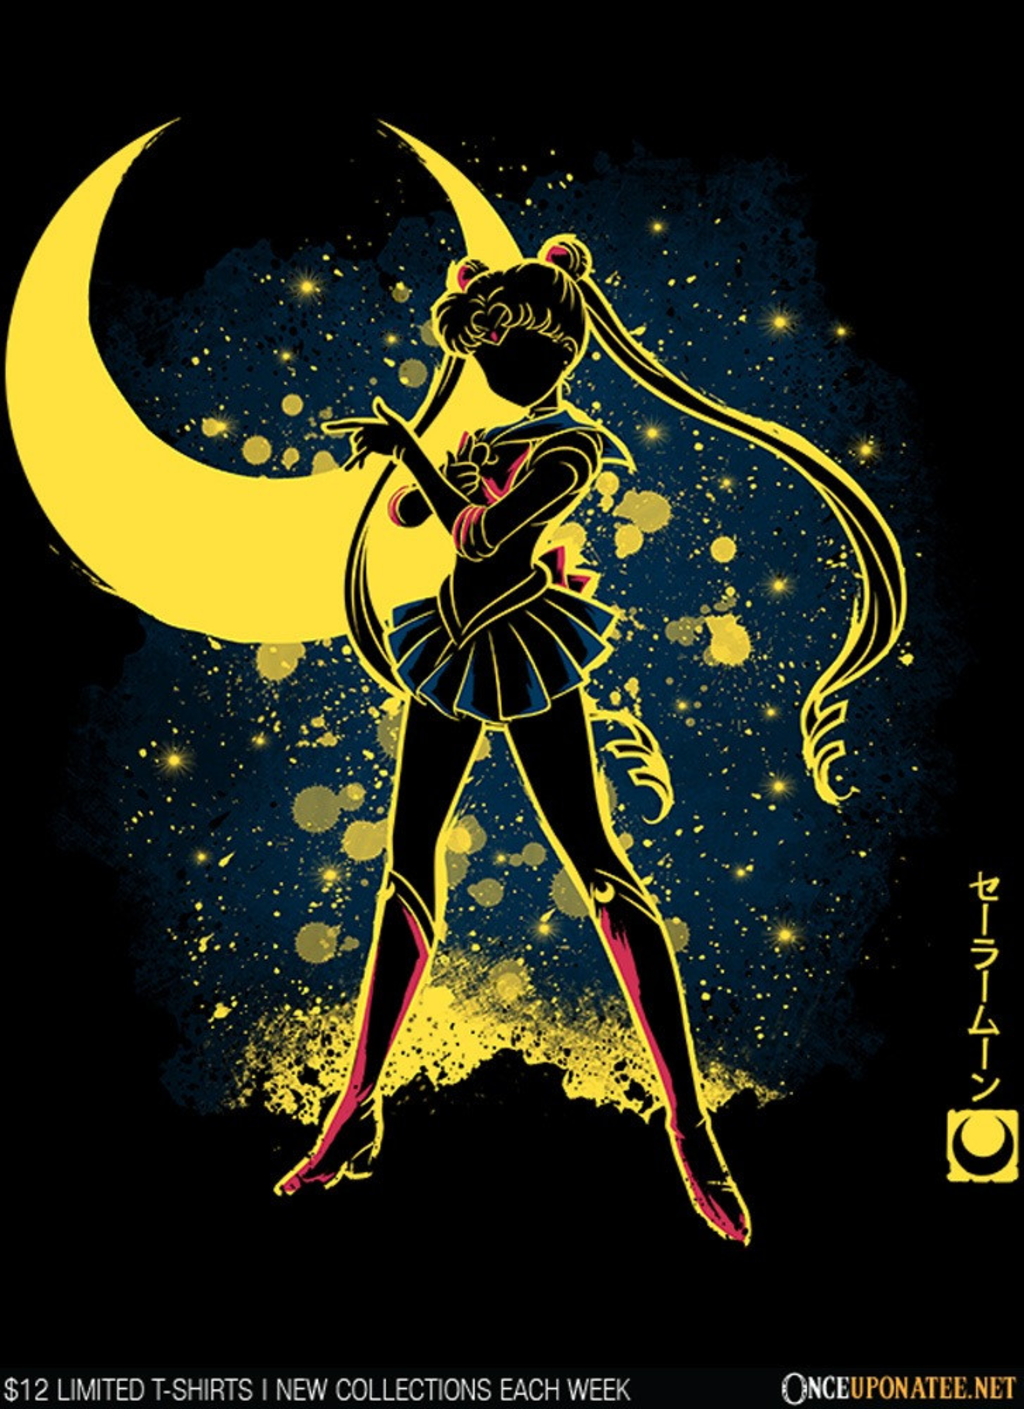 Once Upon a Tee: The Moon